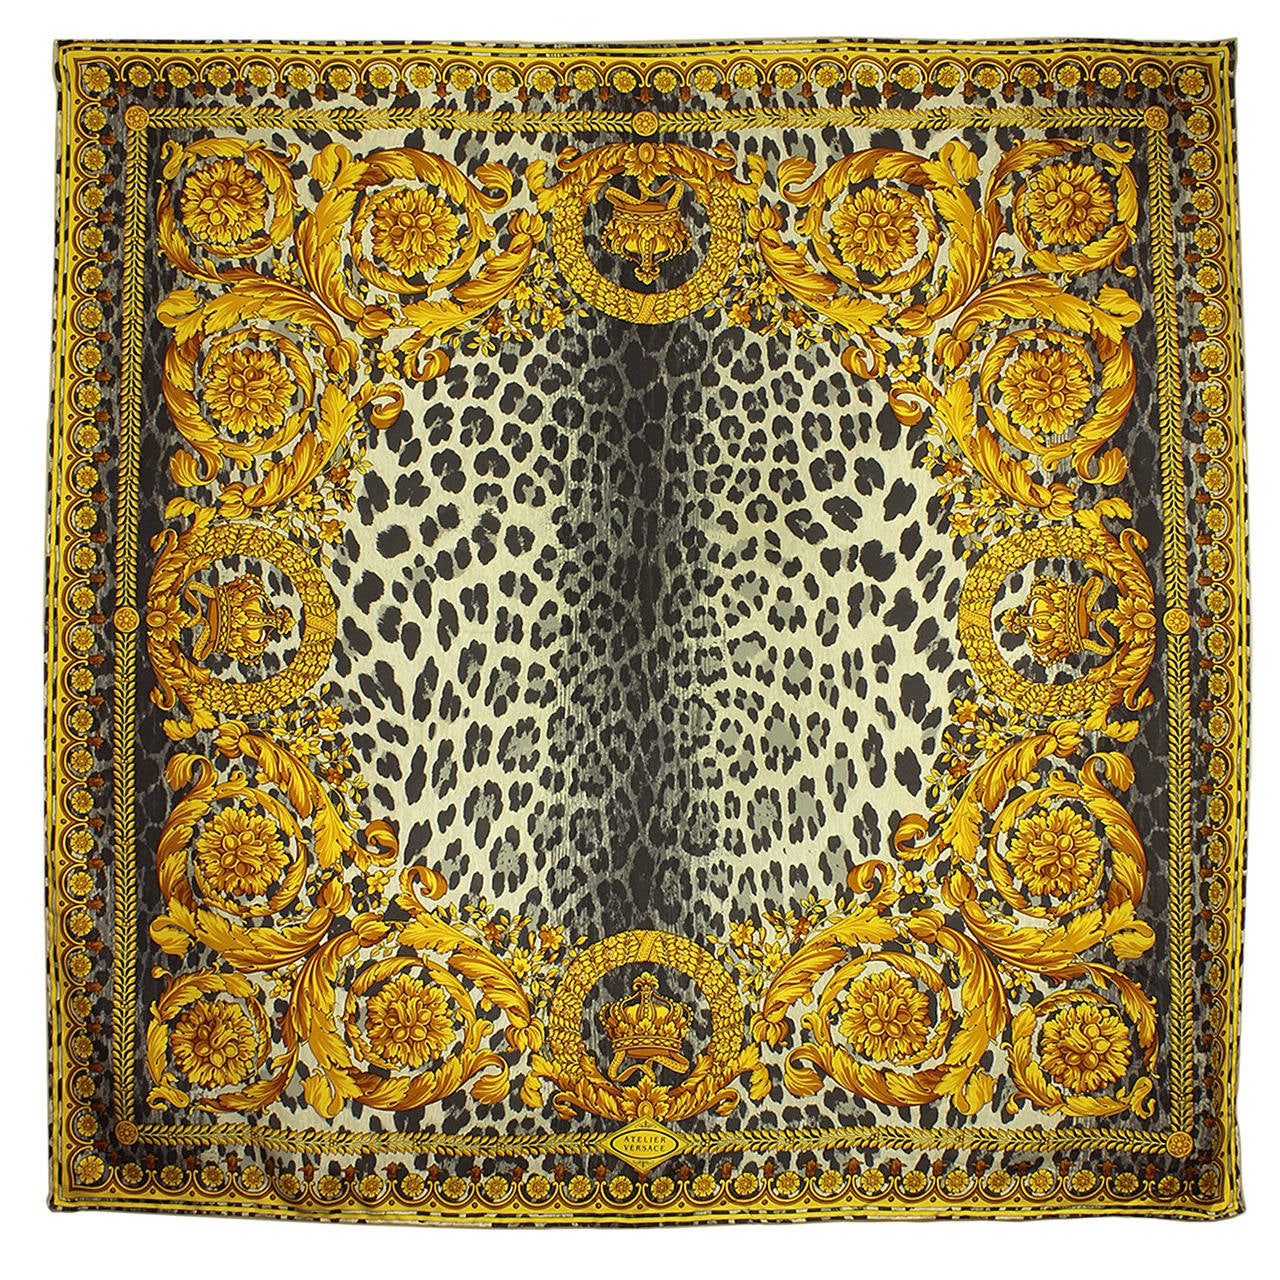 atelier versace 1990s baroque and leopard print silk scarf at 1stdibs. Black Bedroom Furniture Sets. Home Design Ideas